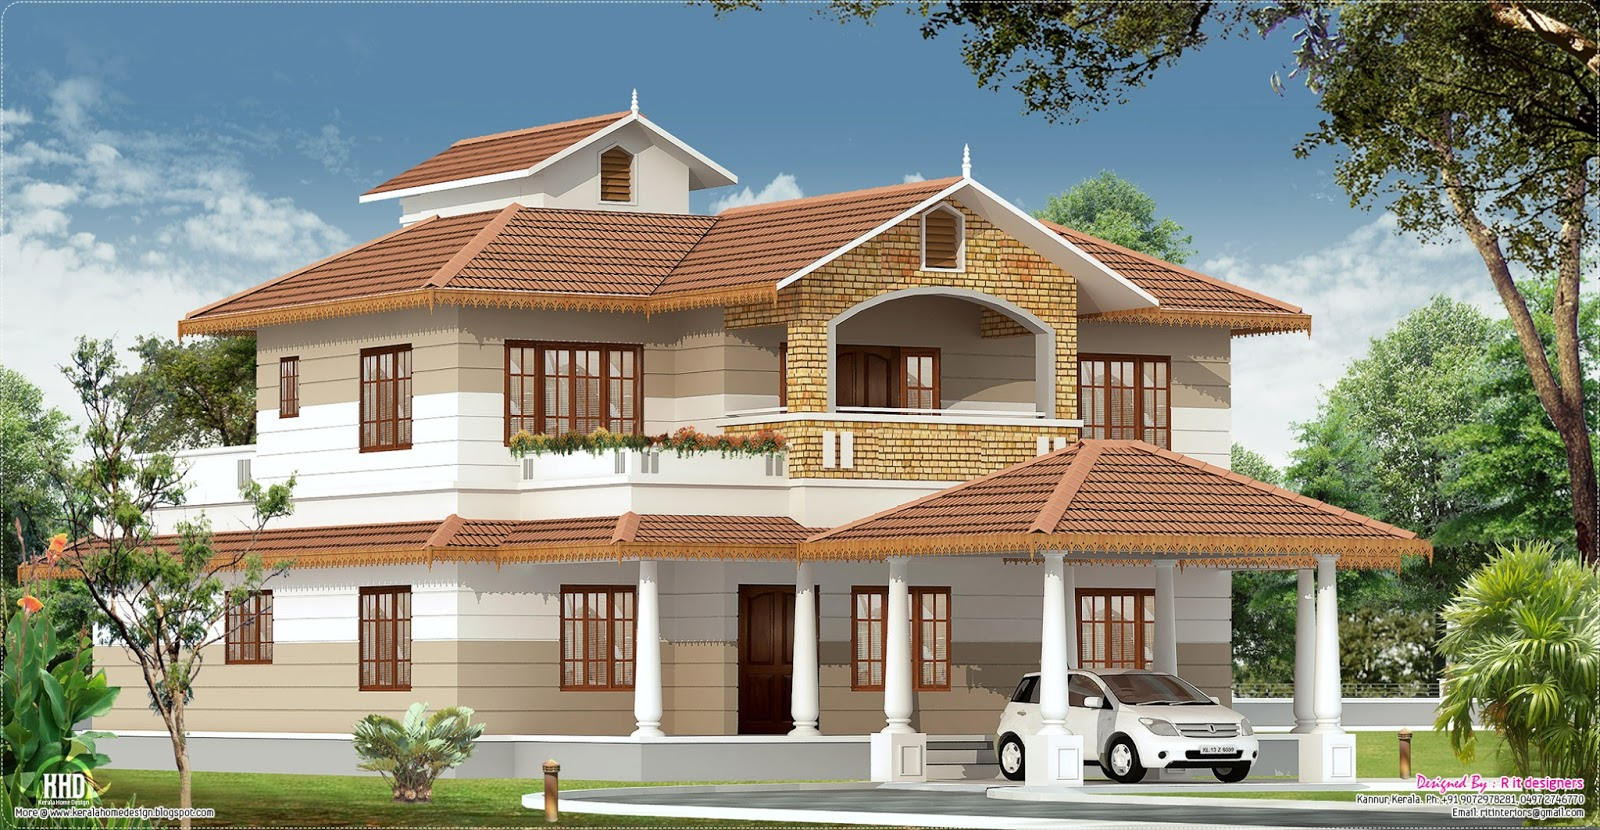 2700 kerala home with interior designs kerala for Home planners house plans